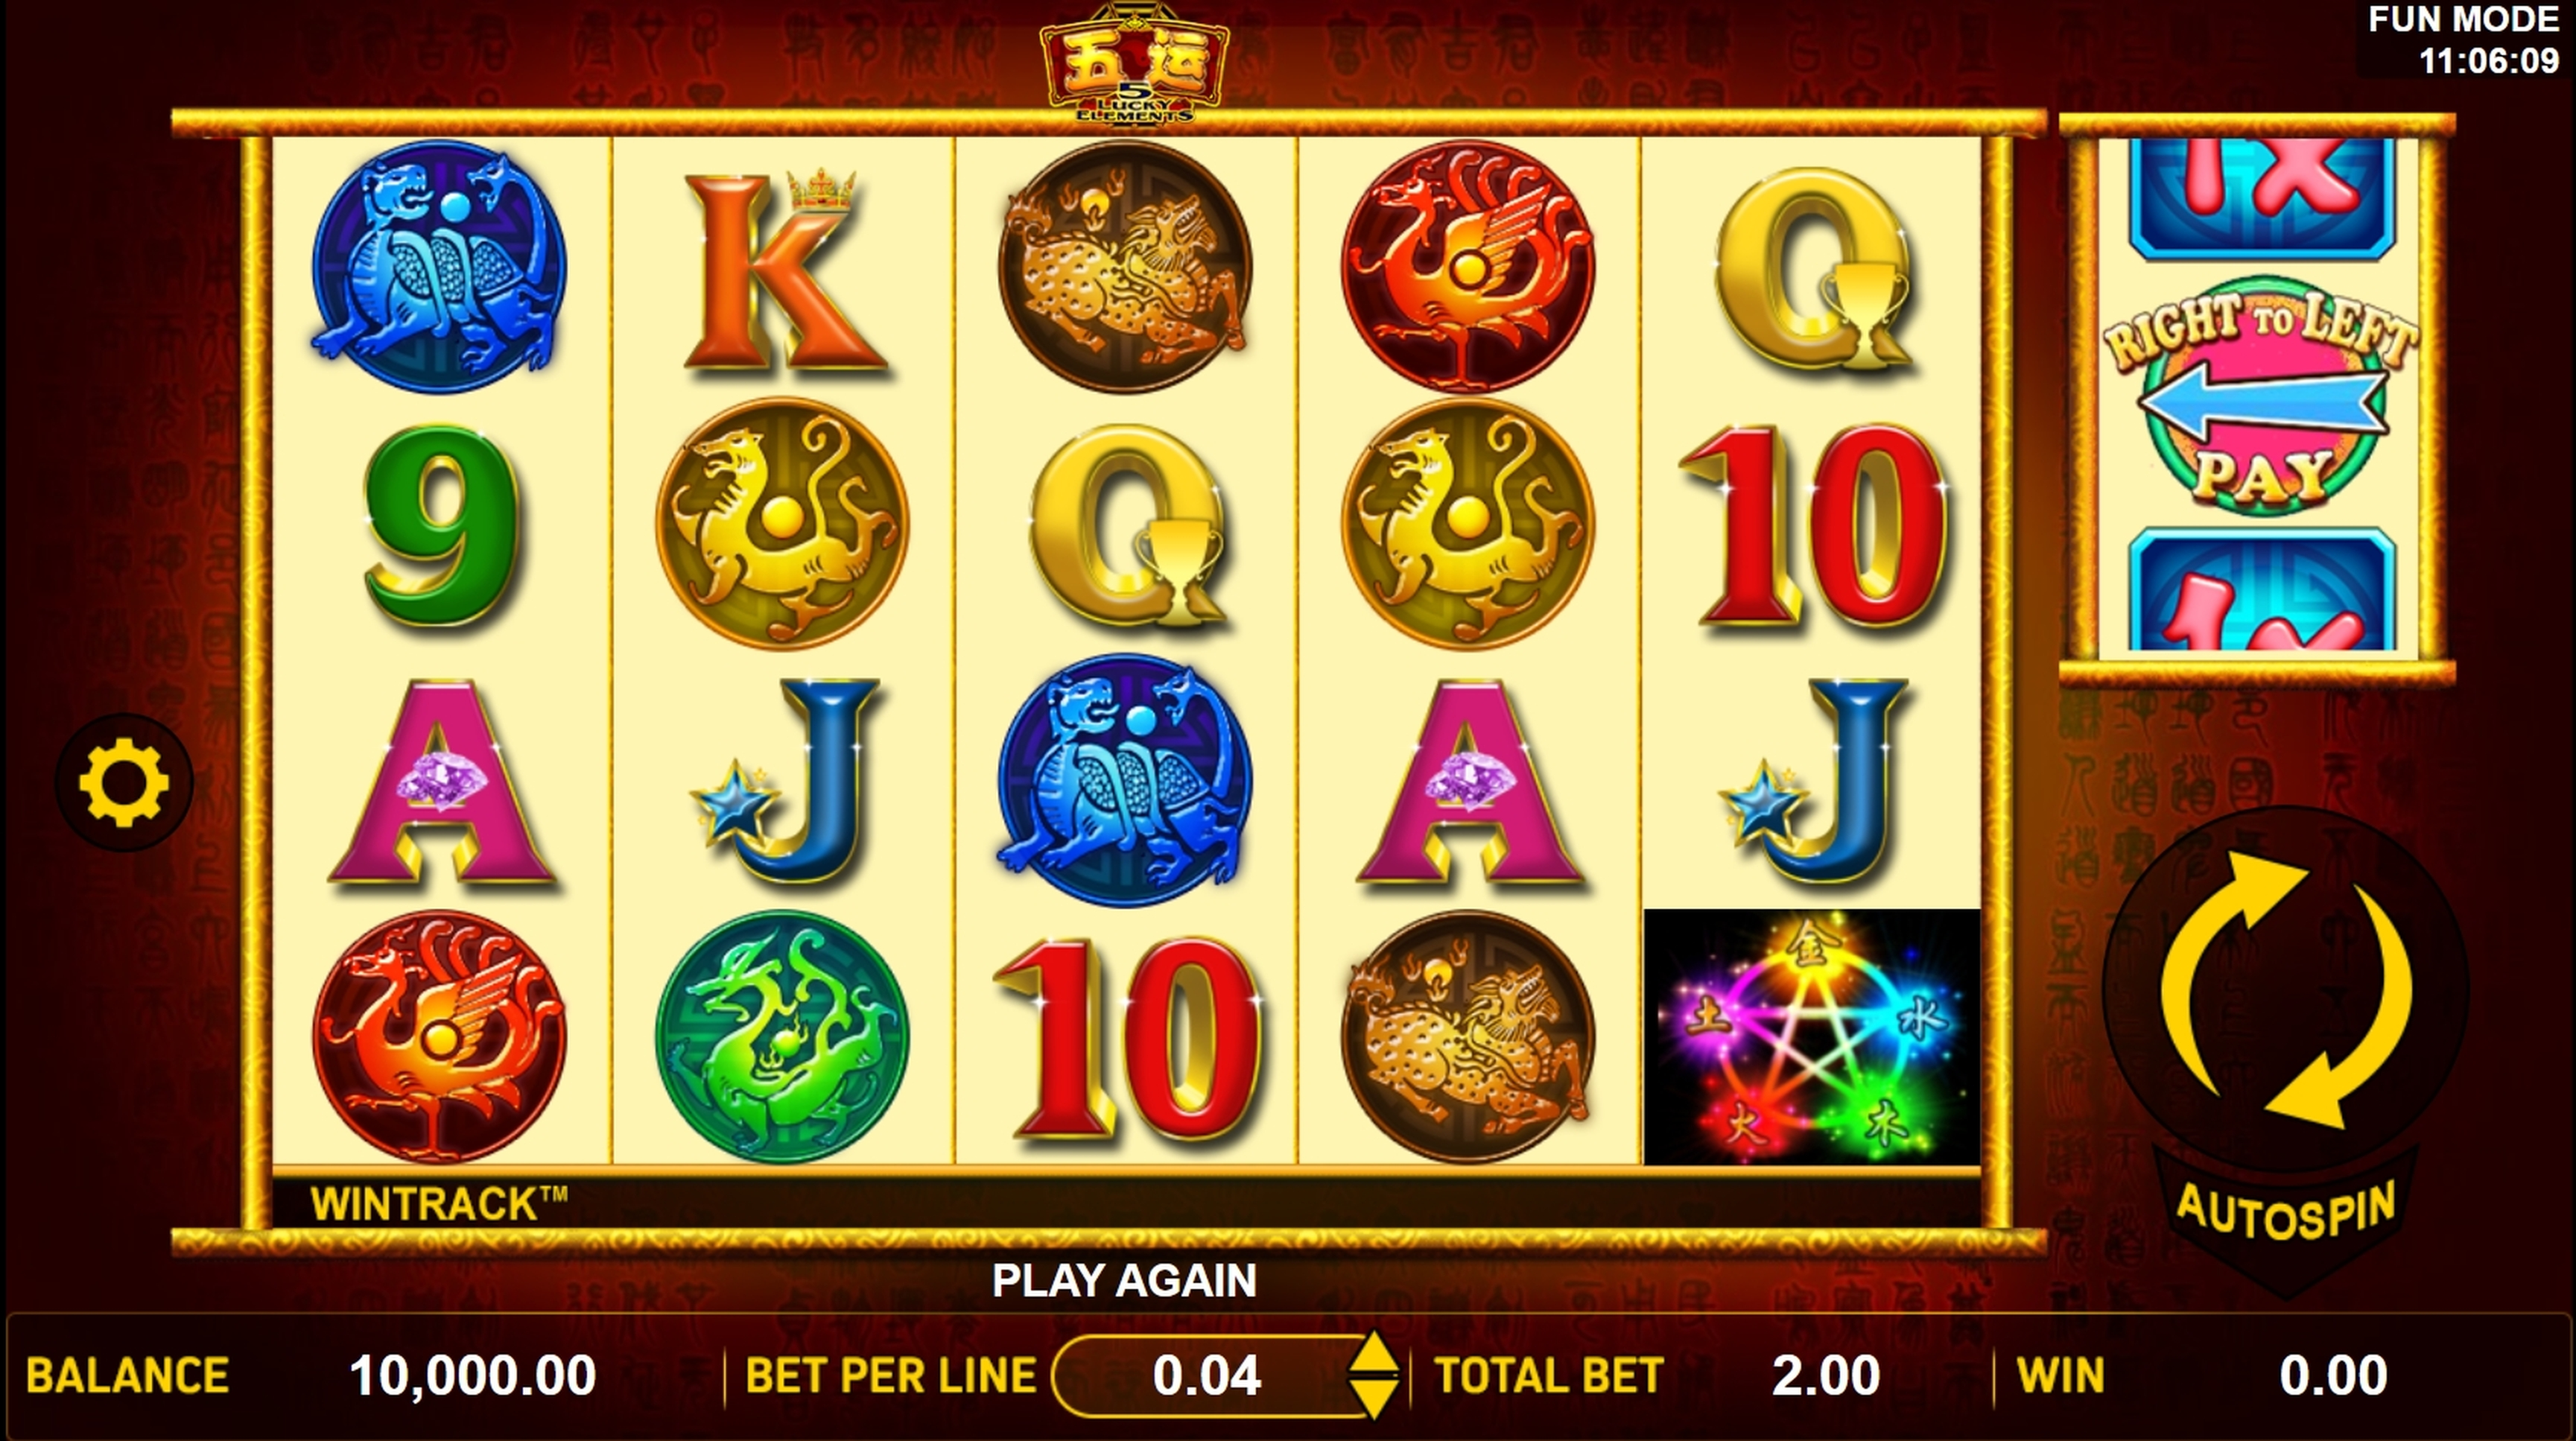 Reels in 5 Lucky Elements Slot Game by Aspect Gaming